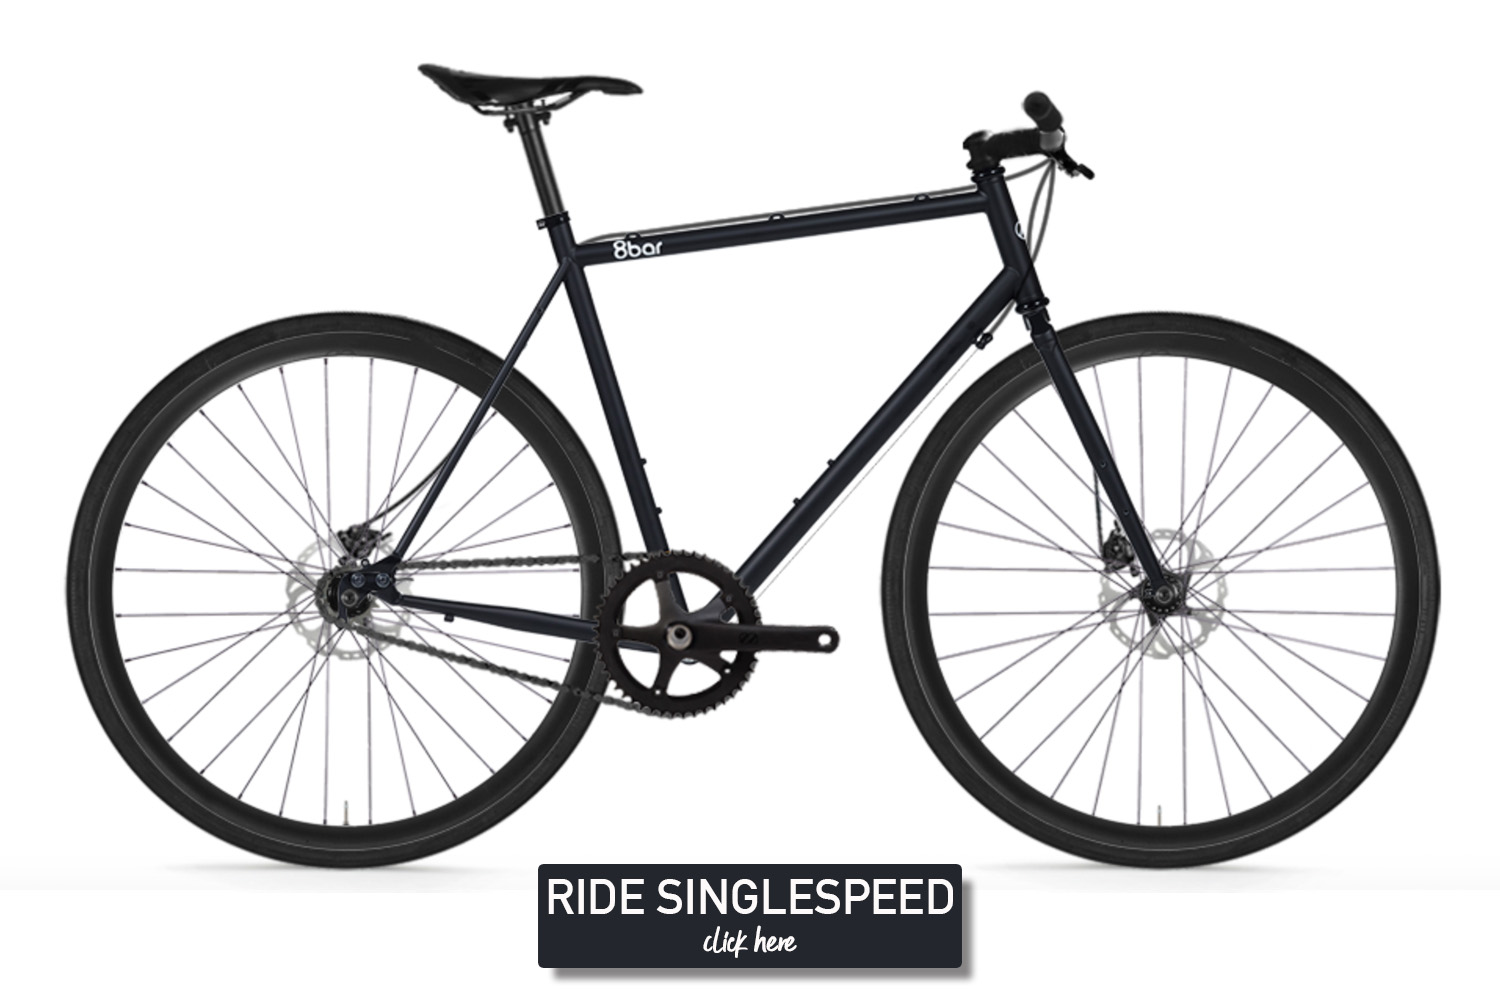 Black bicycle on a white background. It is an 8bar Mitte Steel singlespeed with disc brakes.